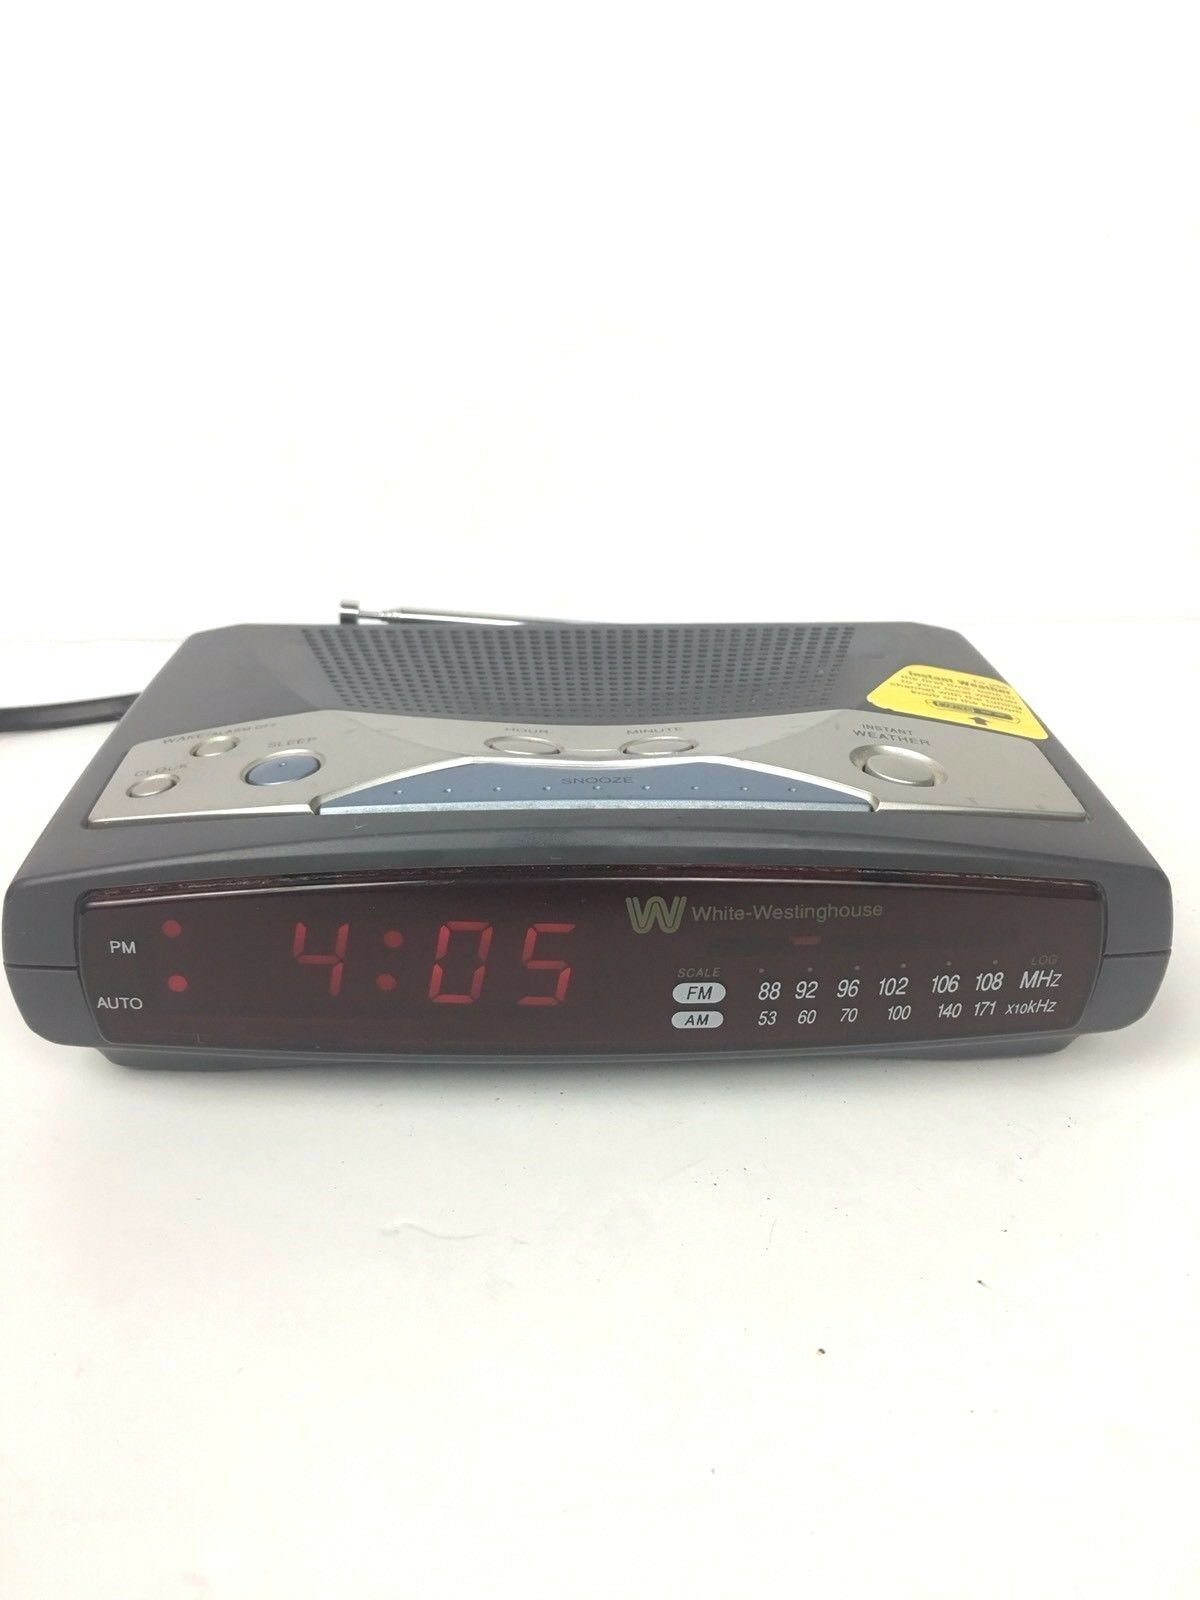 White-Westinghouse WCR-11549 AM/FM Instant Weather Digital Alarm Clock Radio